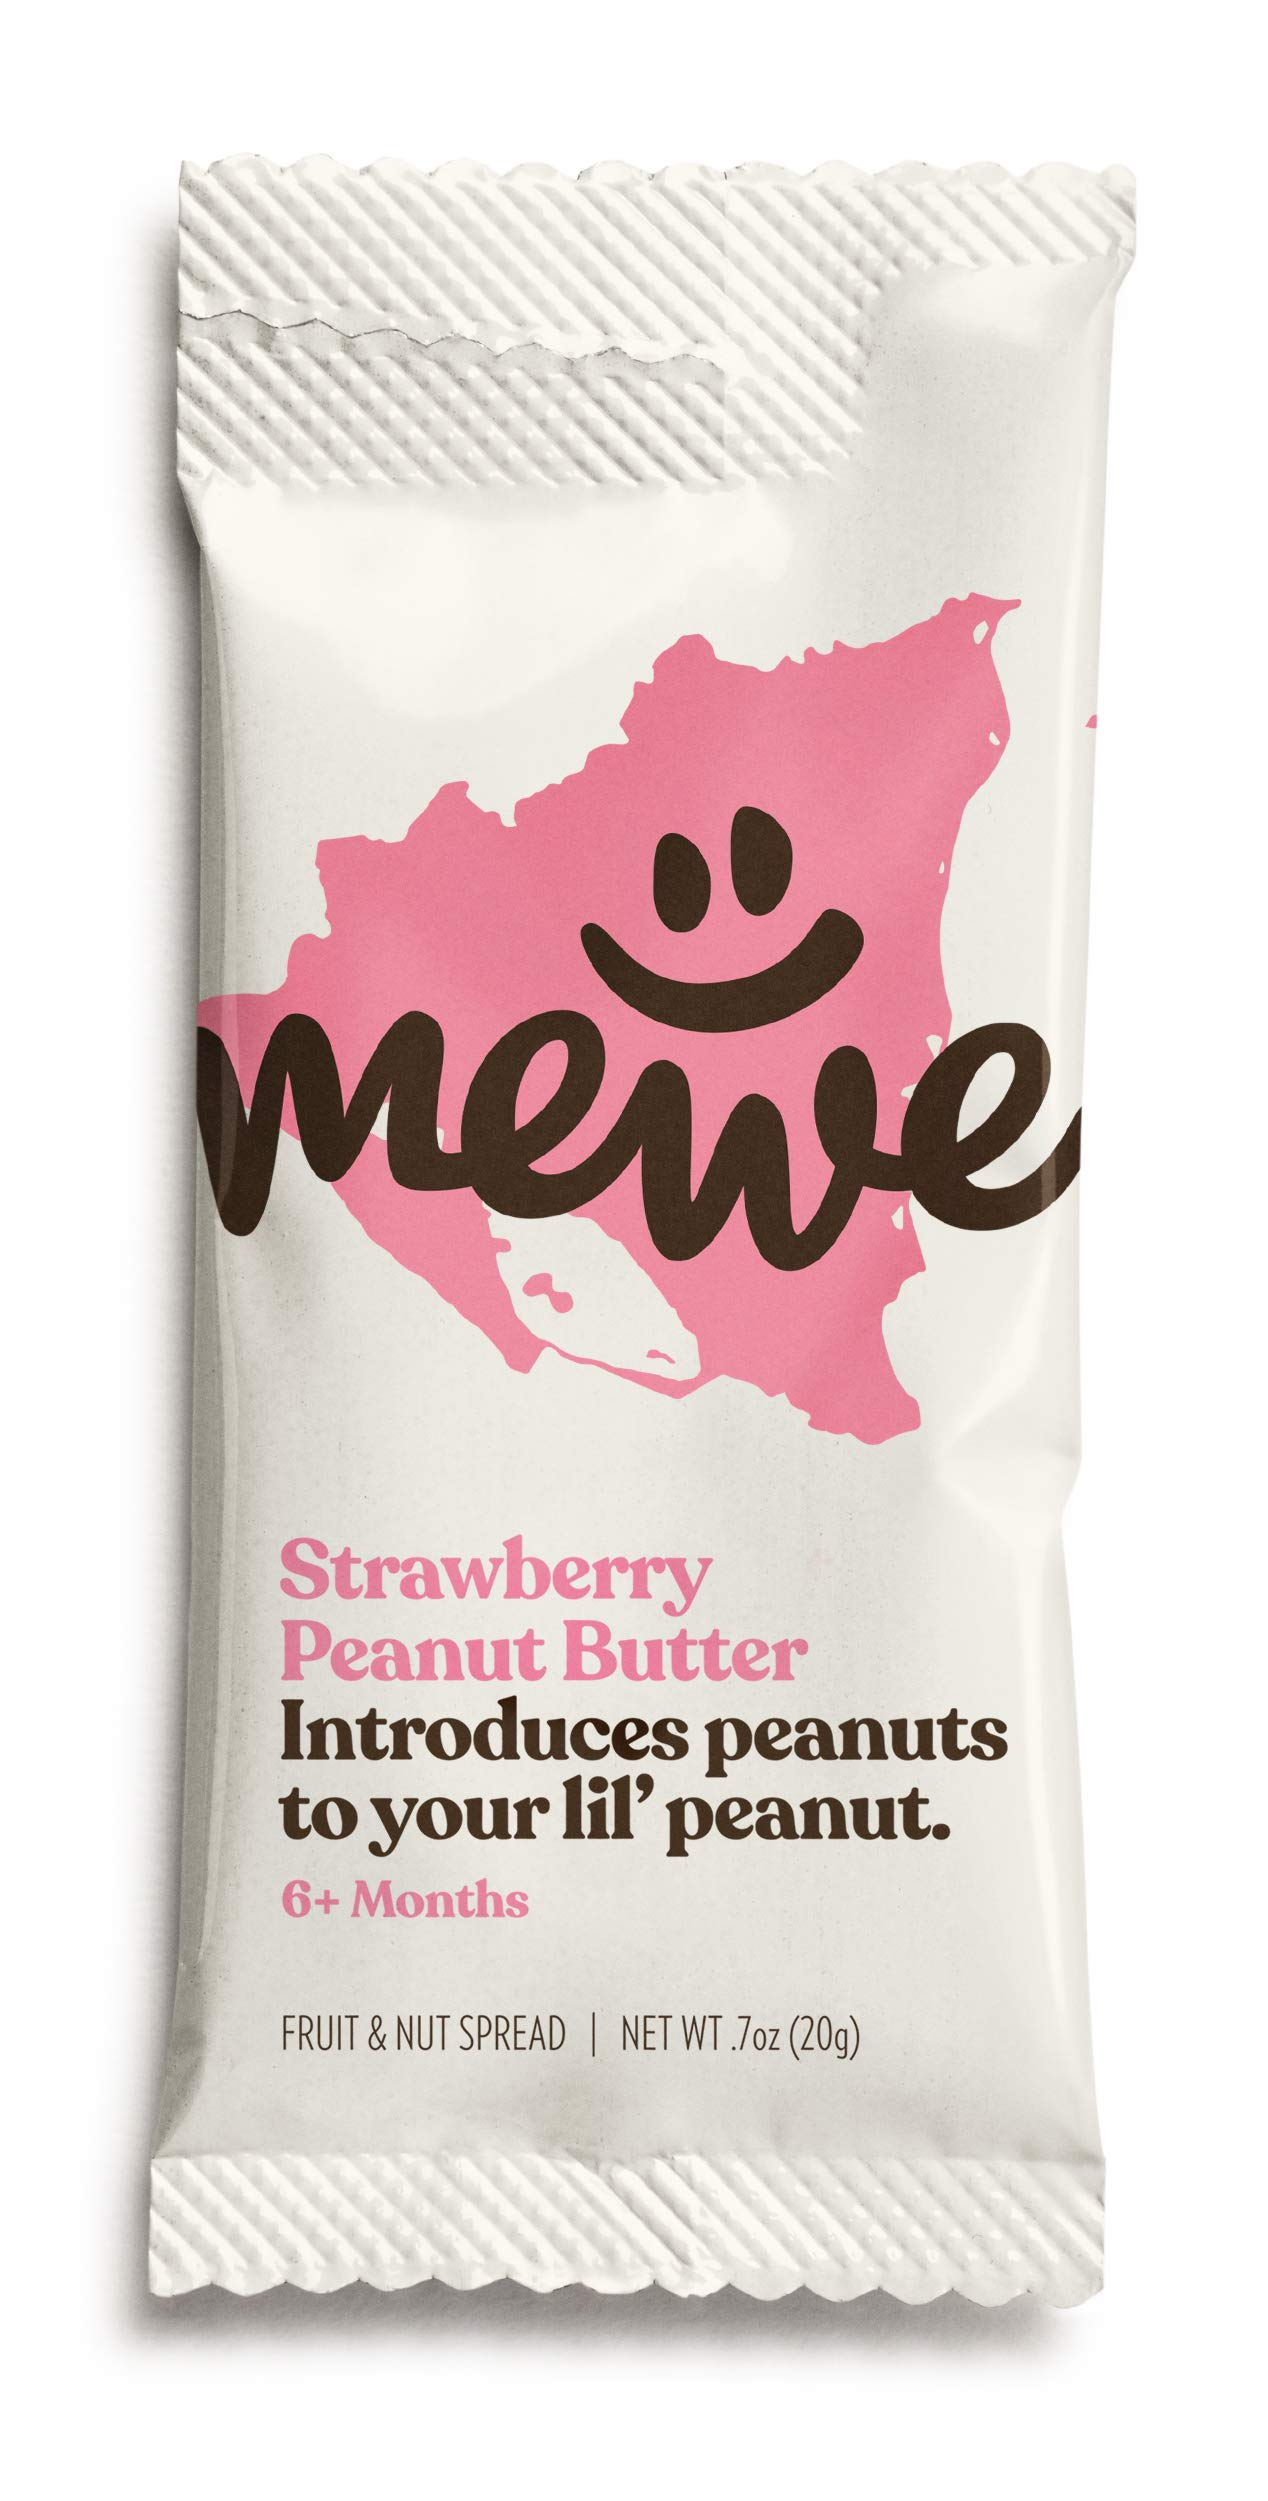 MeWe Baby | Healthy Peanut Butter Snacks, Strawberry | First Solid Food, 6+ Months (16-count)